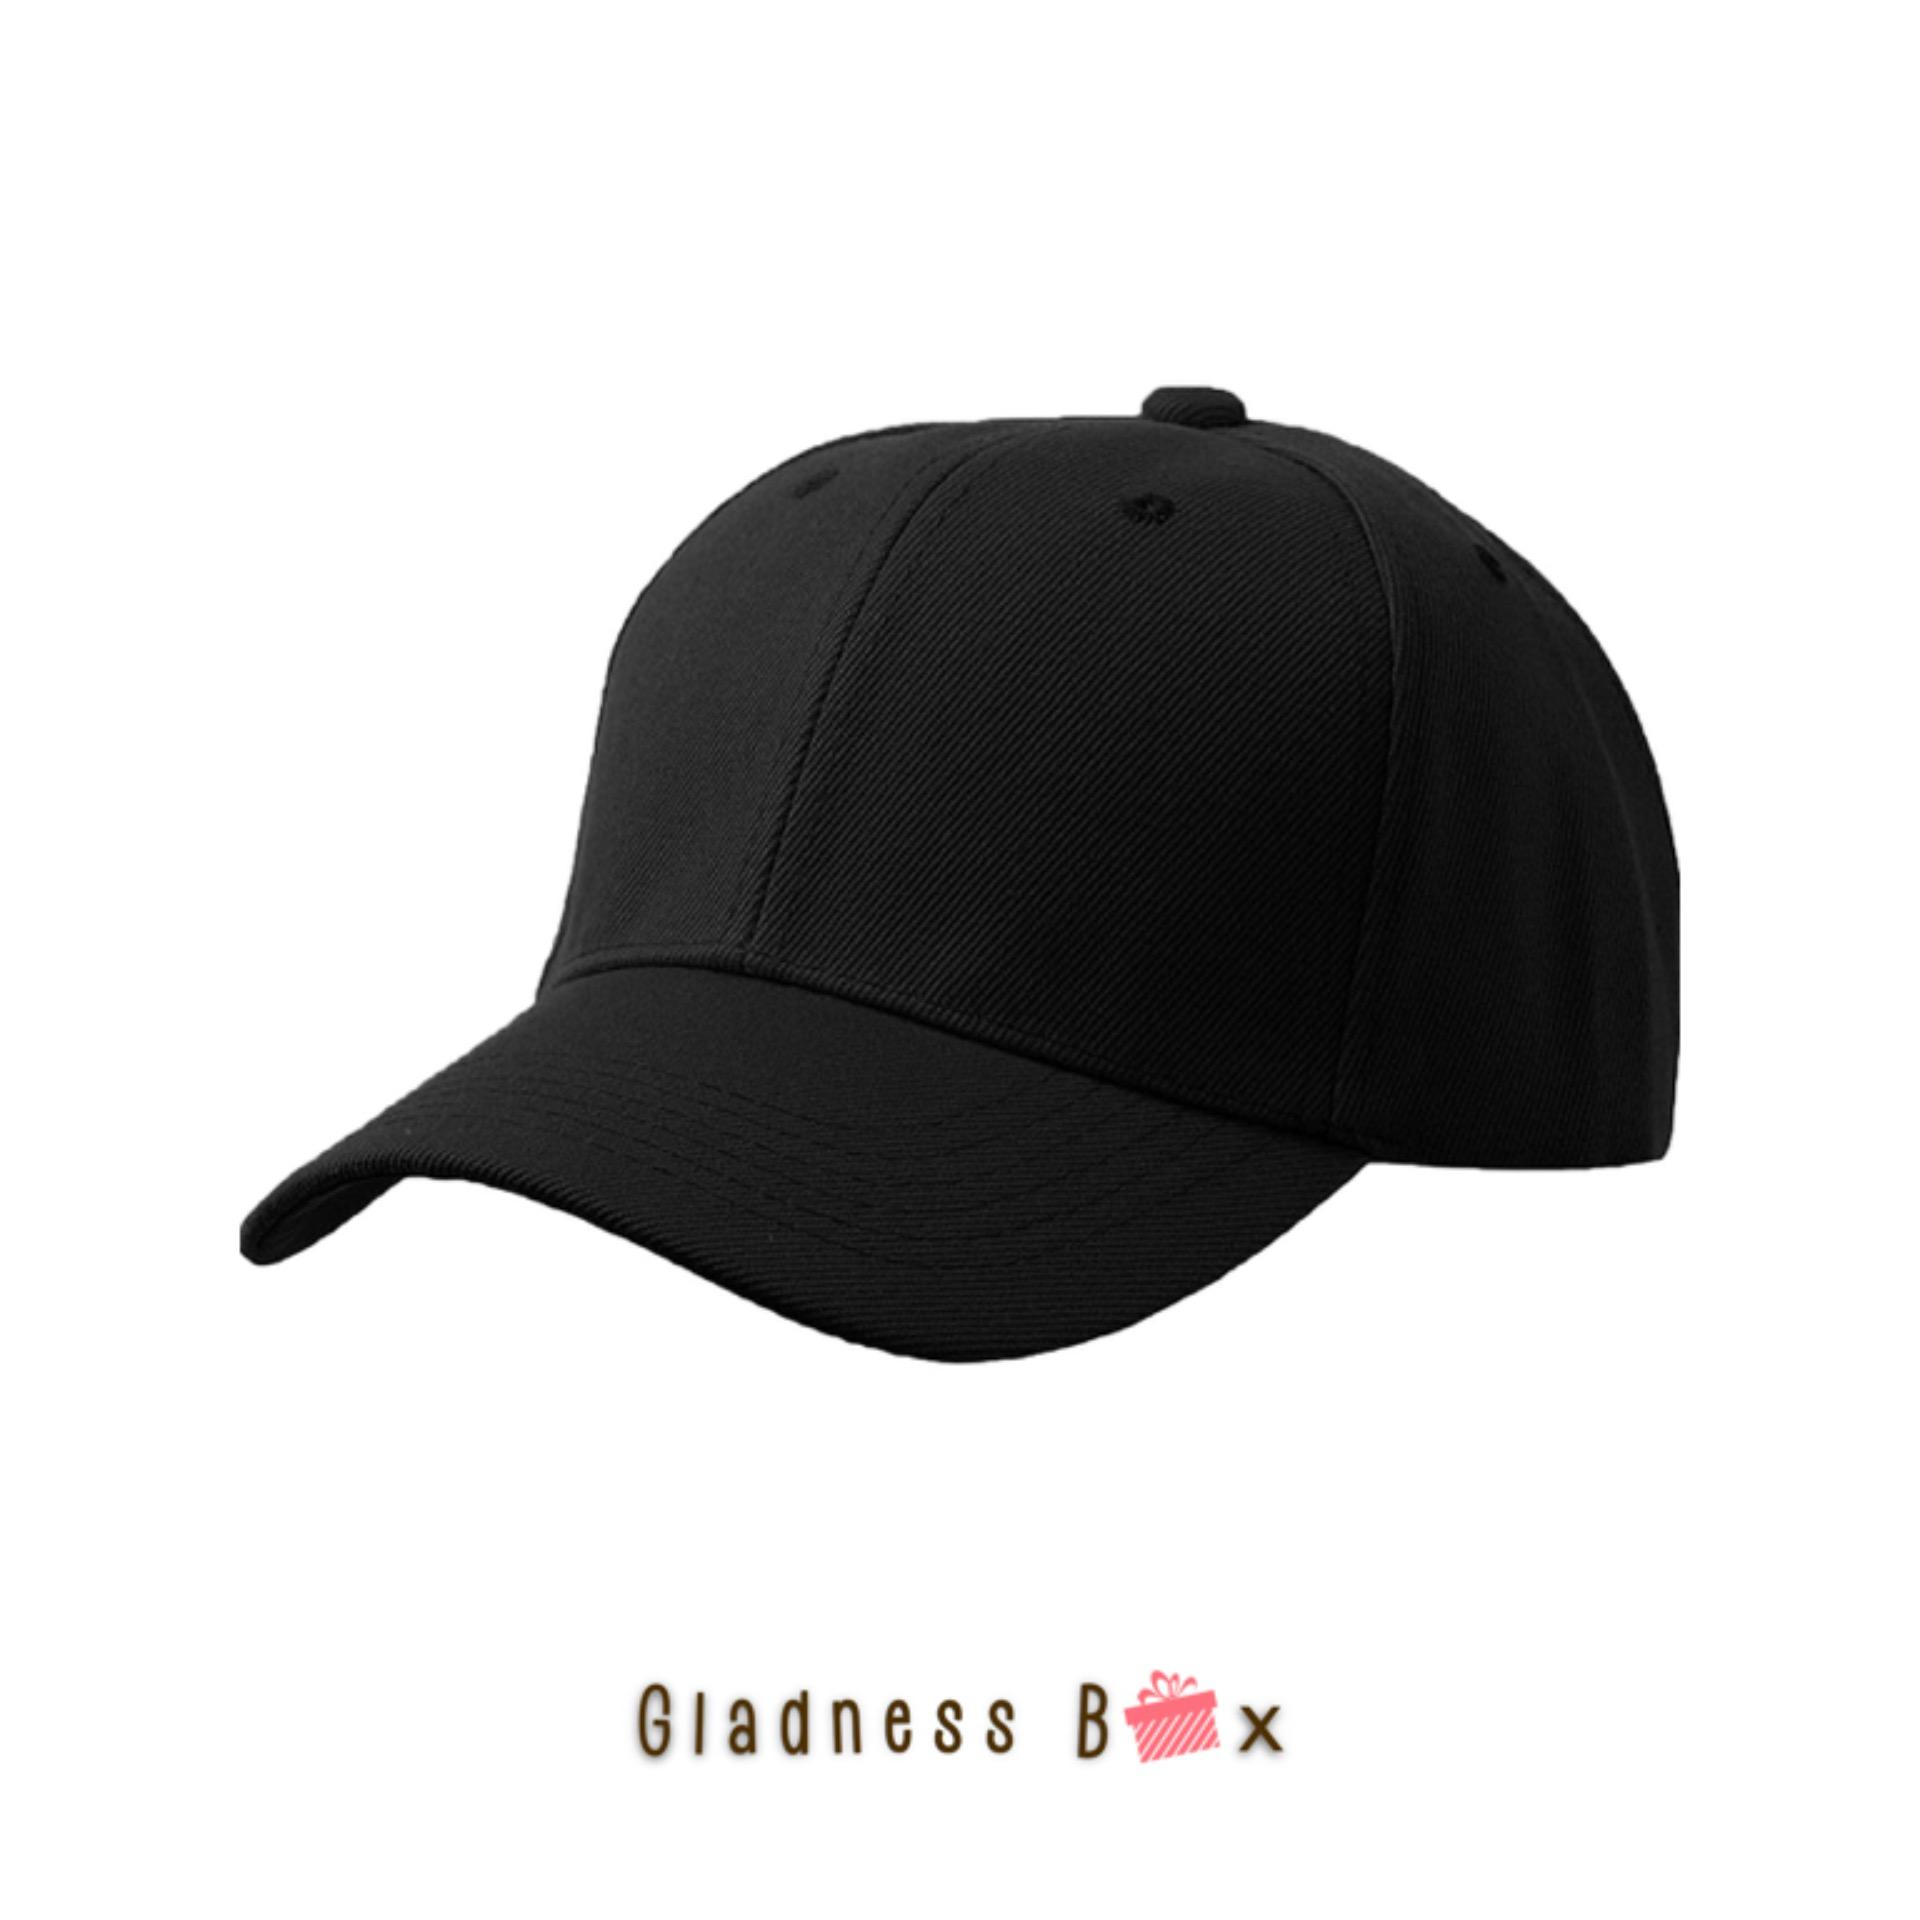 52ed29b9c9d Gladness Box High Quality Plain Baseball Cap for Men Women Unisex